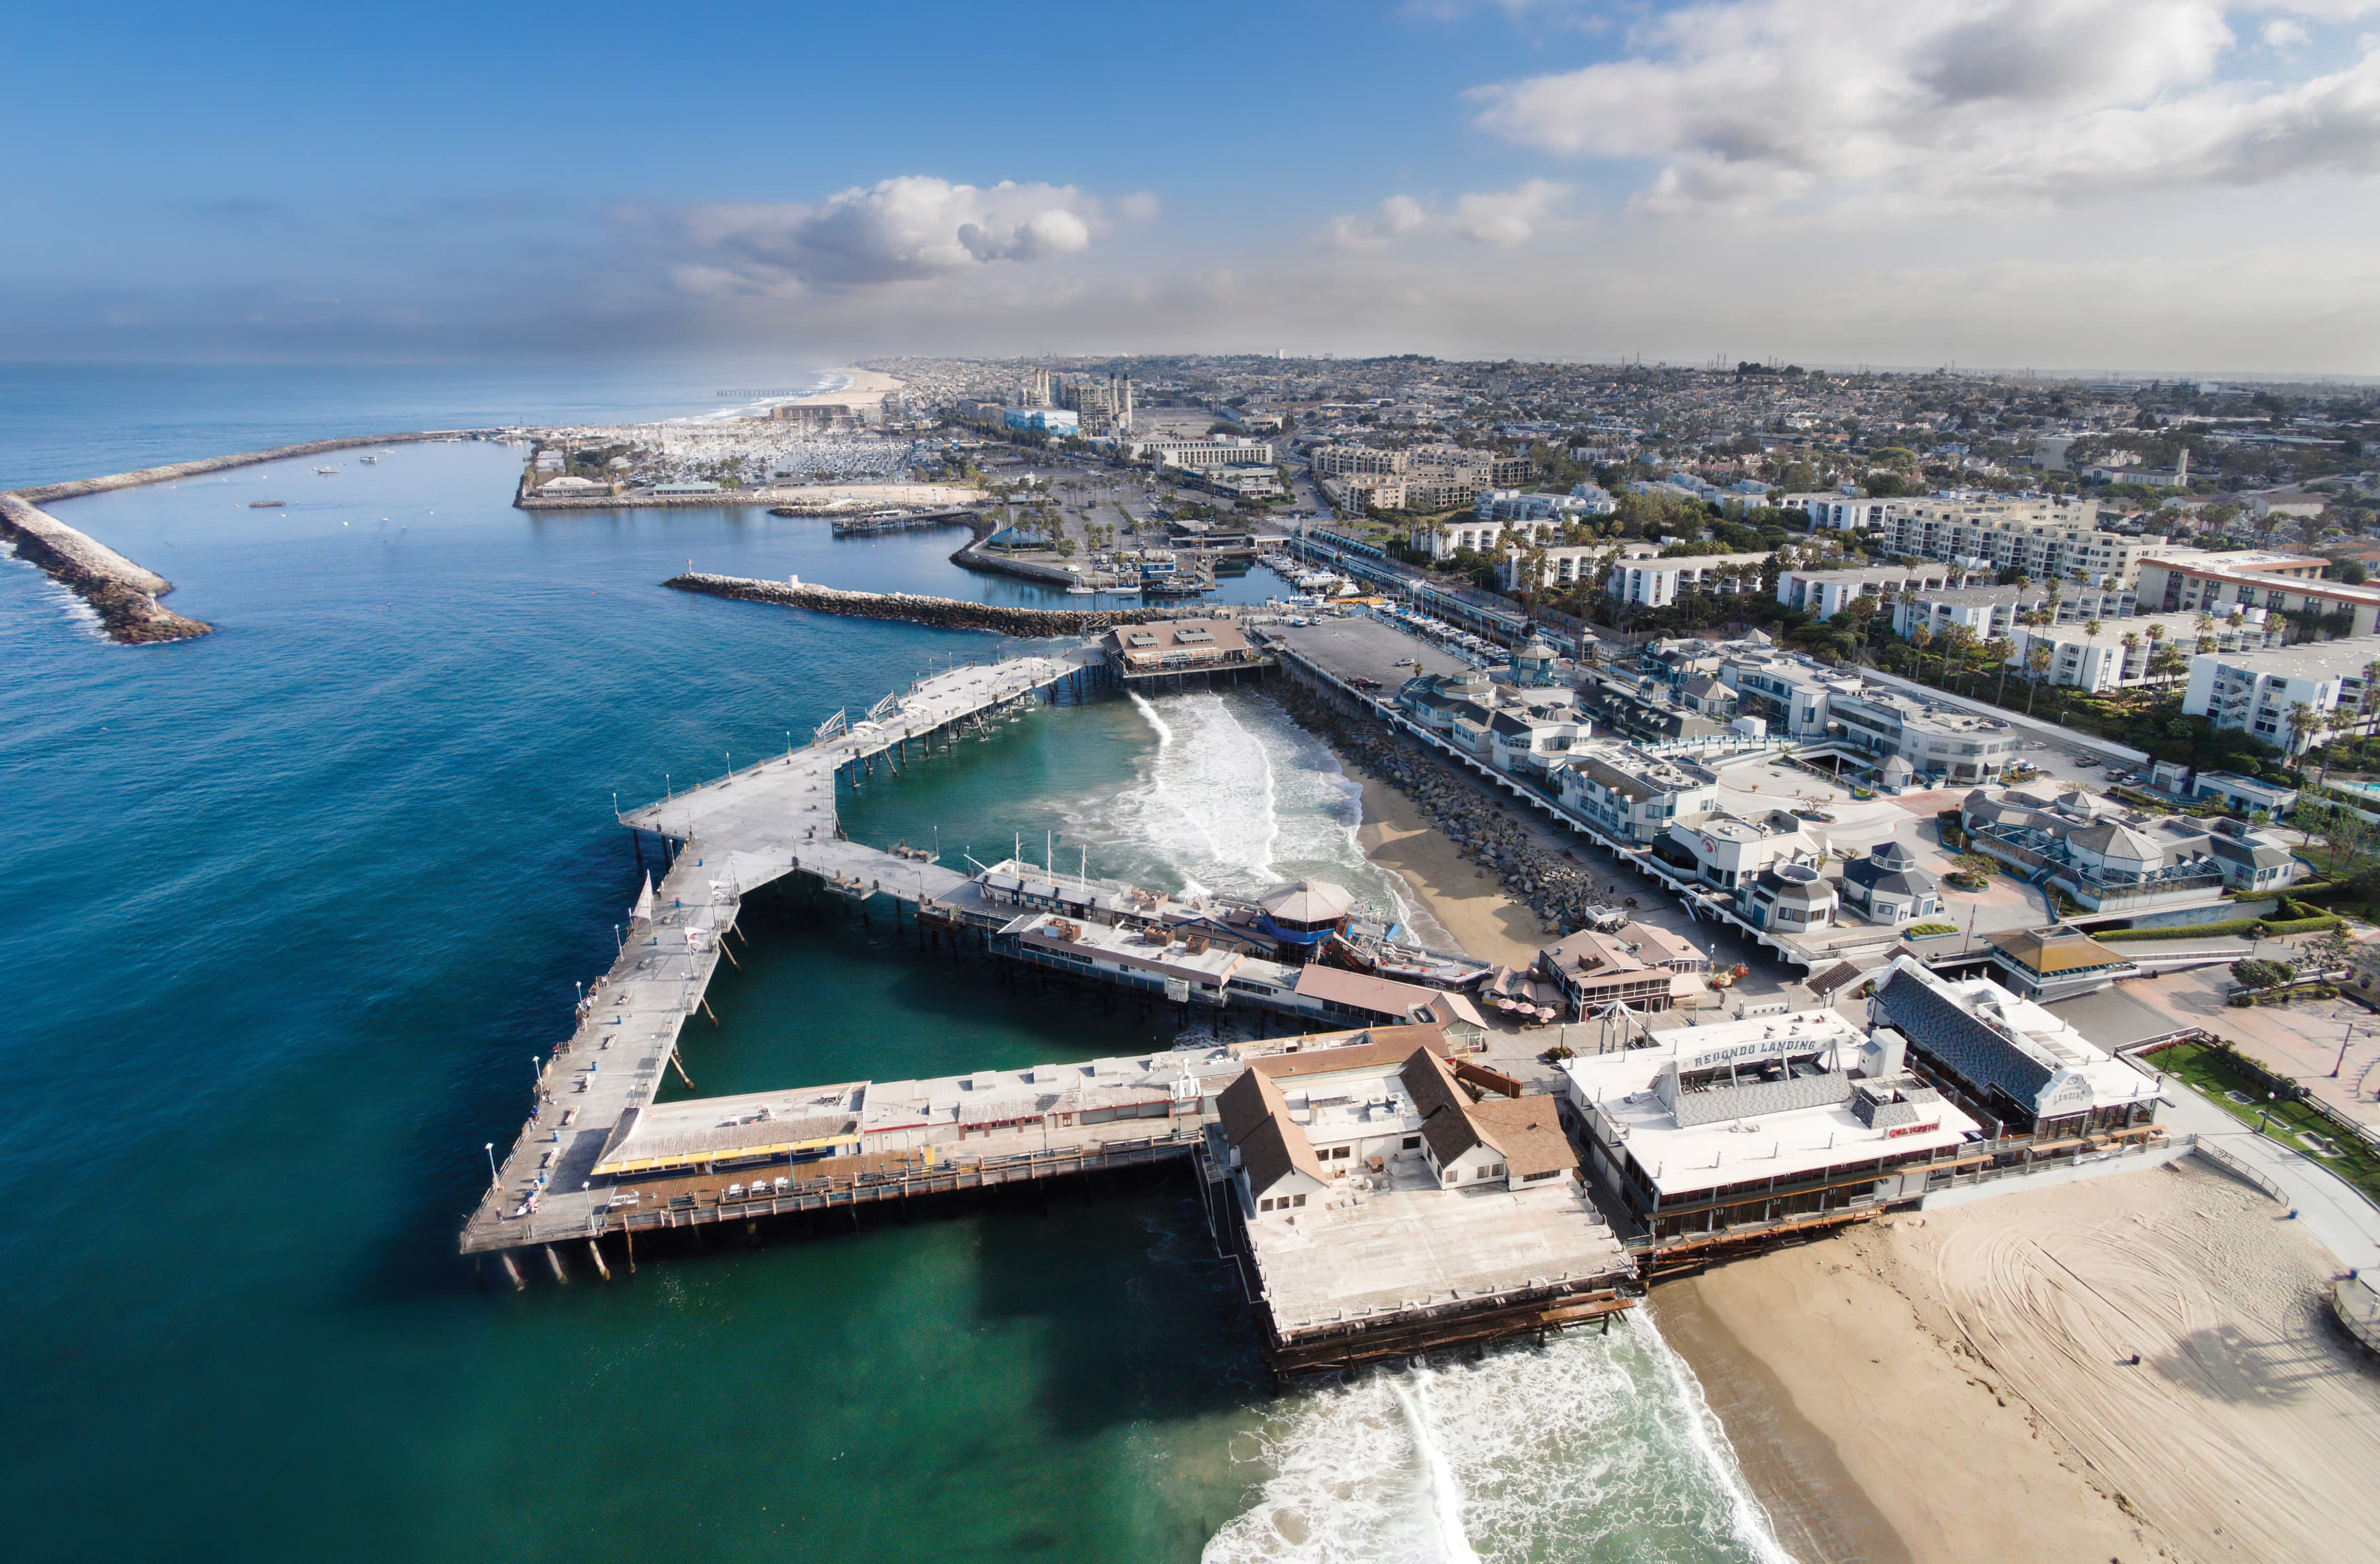 RSM Design worked with CenterCal Properties to develop a brand strategy and voice for The Waterfront, a mixed-use project in Redondo Beach, California.